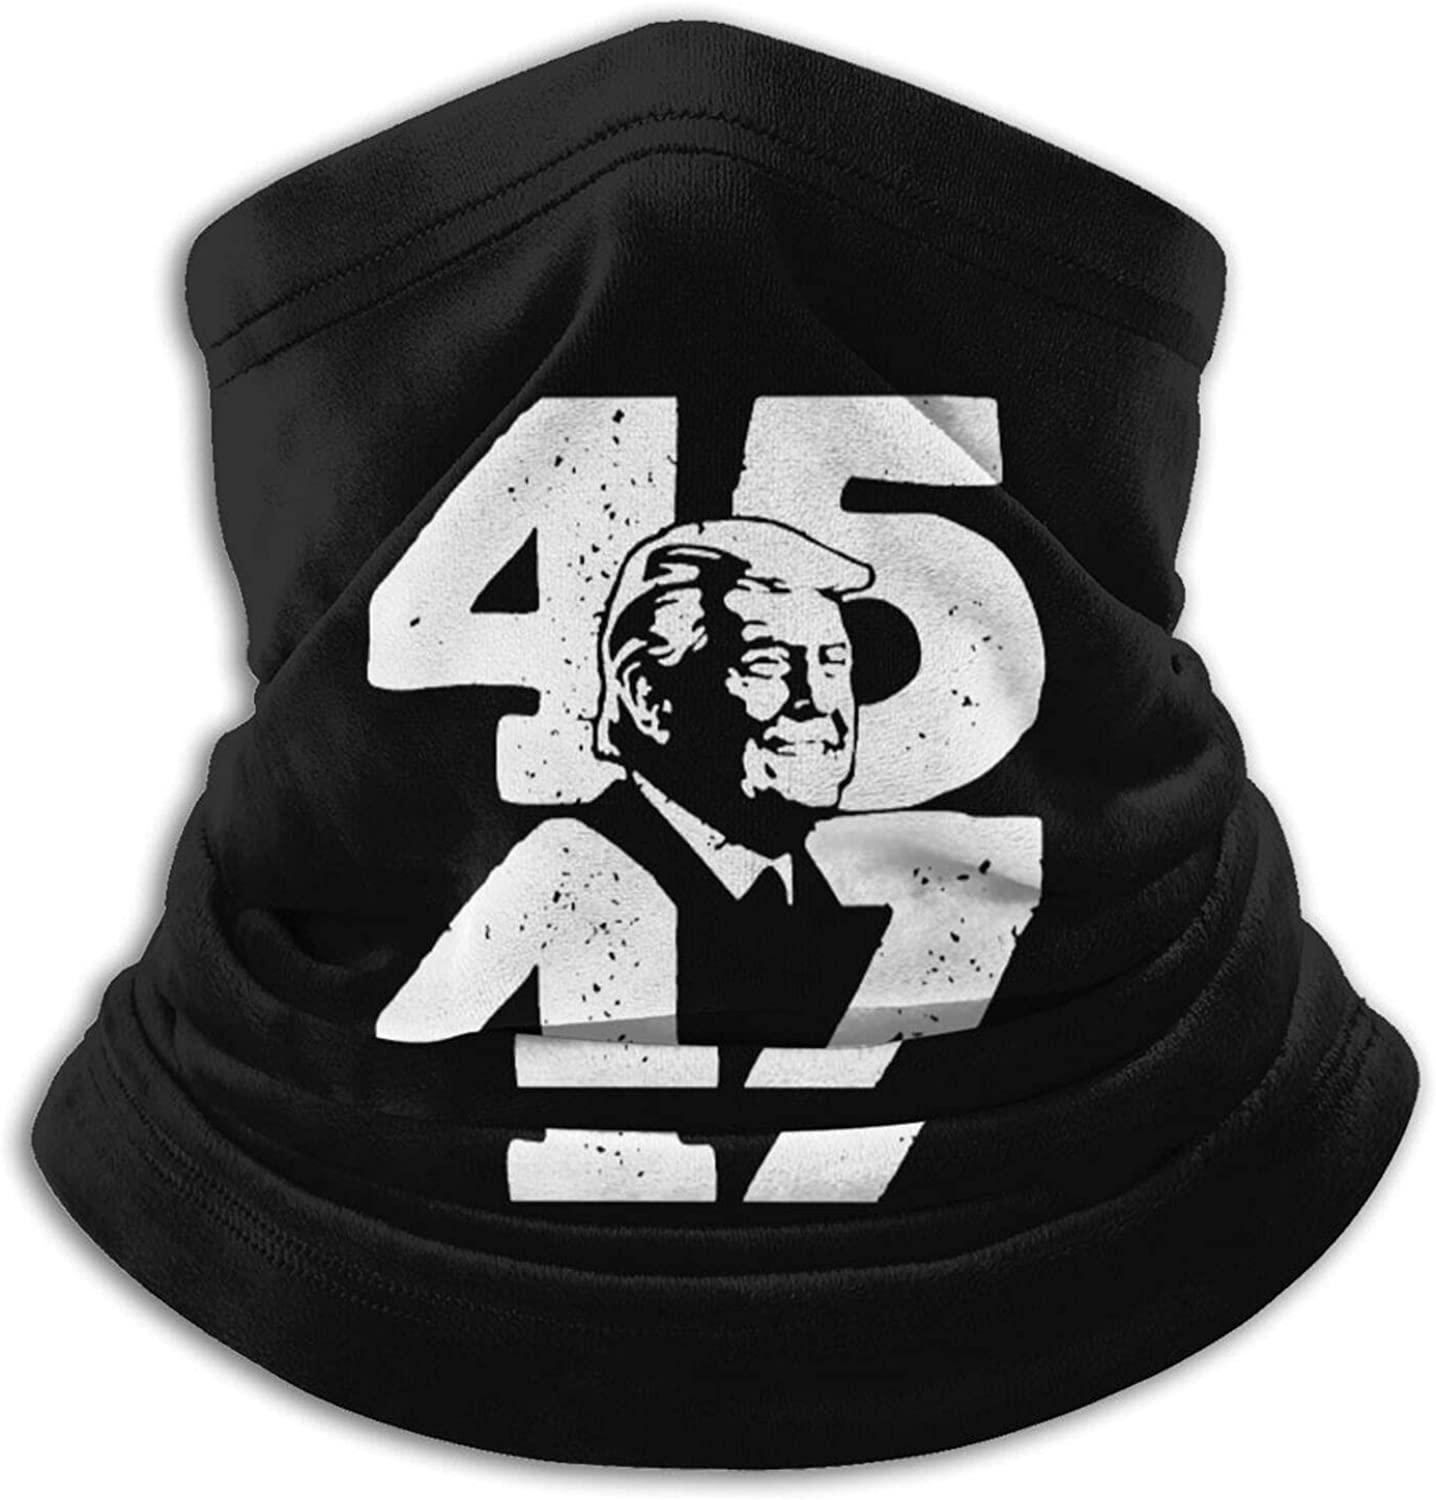 45 47 trump 2024 president unisex winter neck gaiter face cover mask, windproof balaclava scarf for fishing, running & hiking